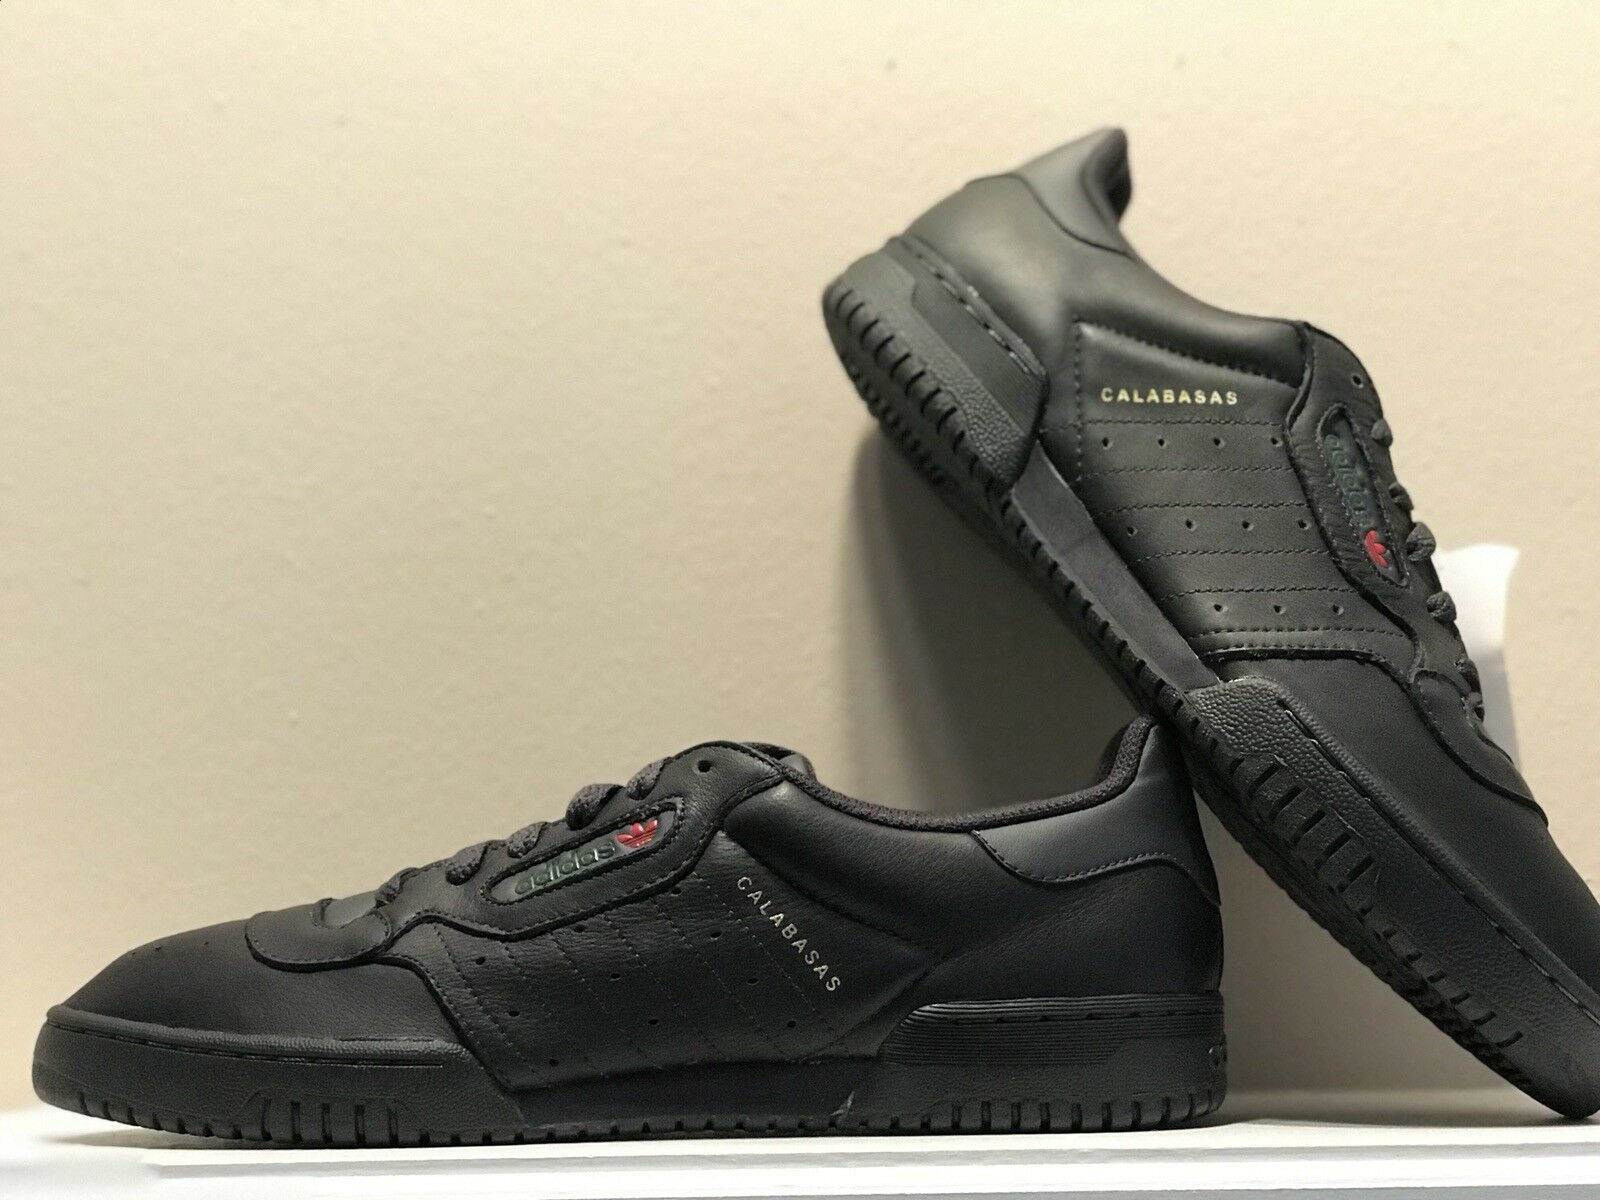 YEEZY POWERPHASE SIZE 11 NEW IN BOX CORE BLACK